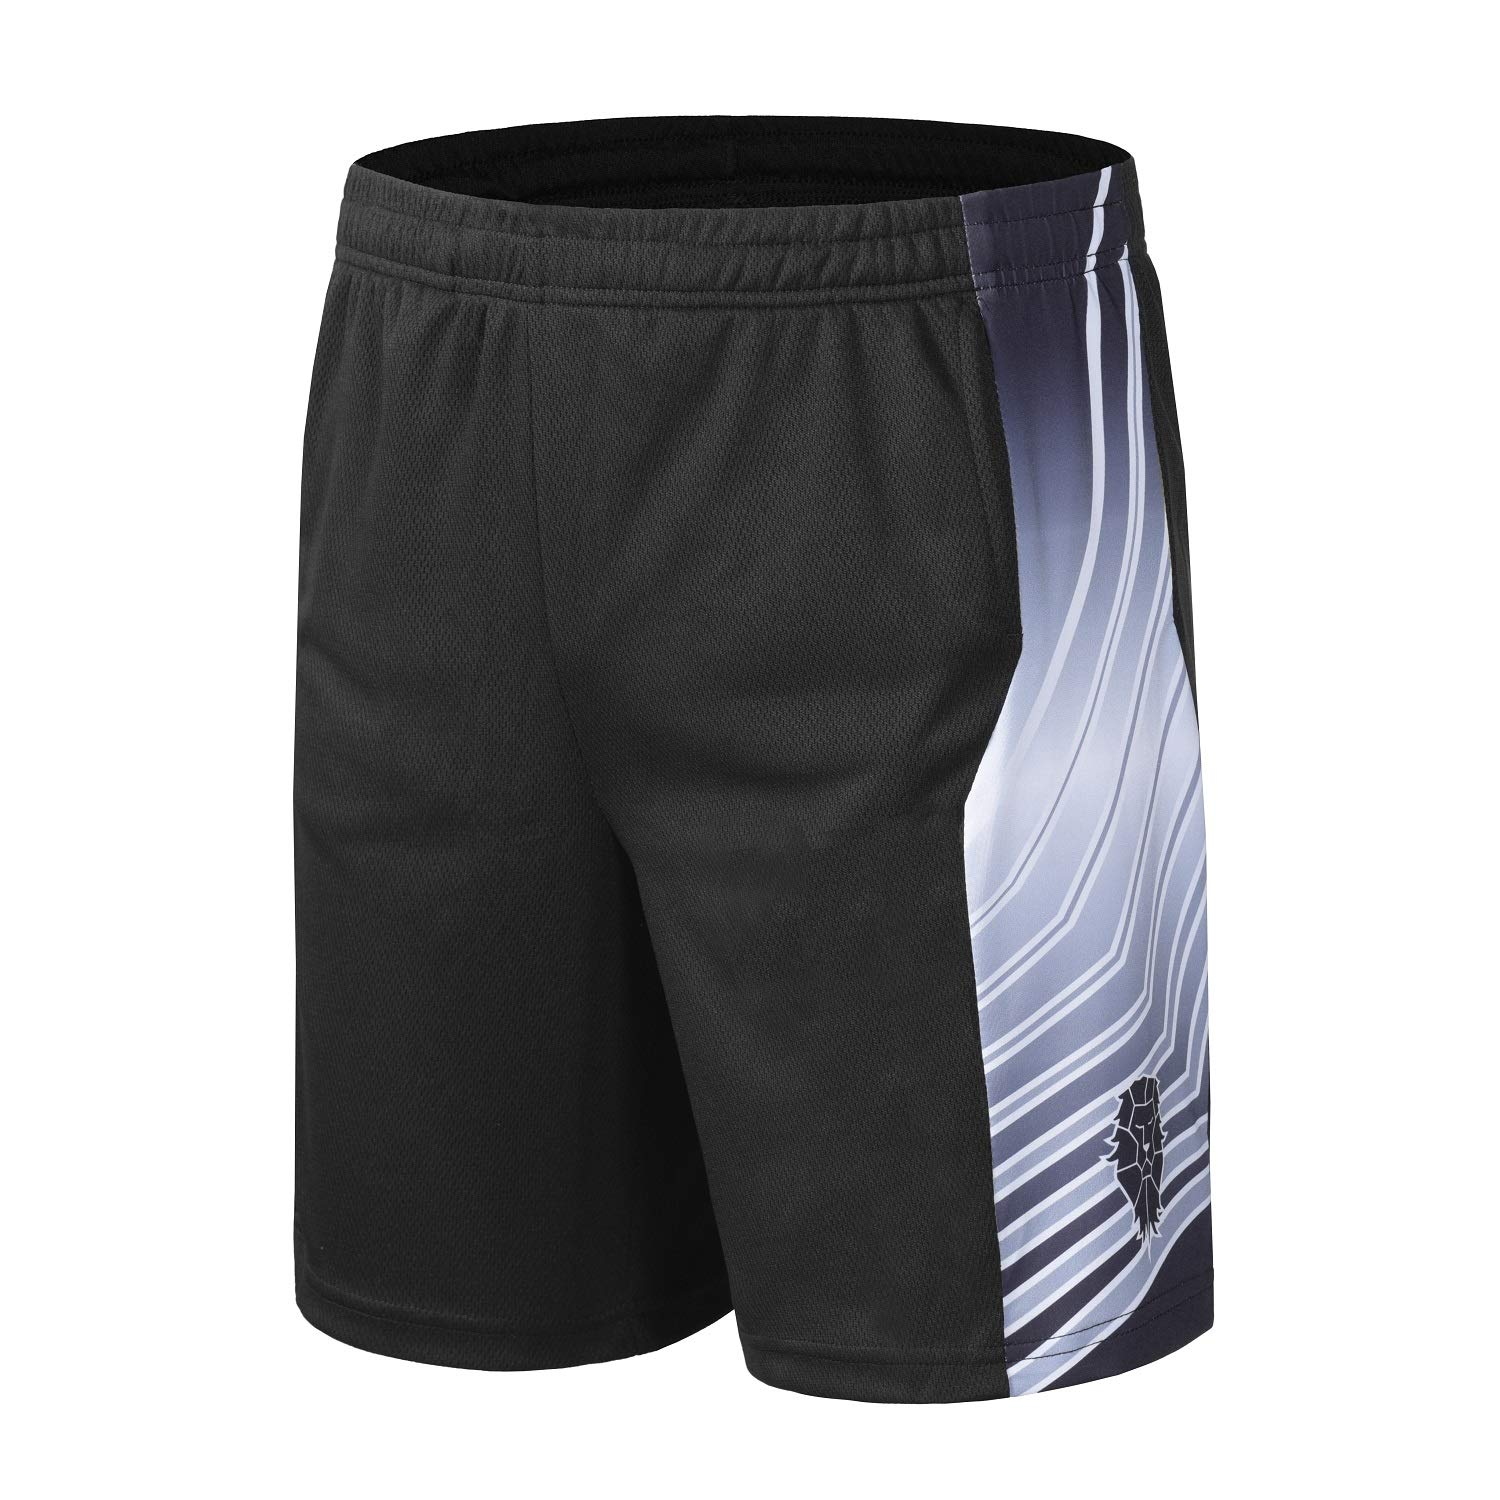 PIQIDIG Youth Boys' Loose Fit Athletic Shorts Quick Dry Active Shorts with Pocket, 2-Pack (Black-1, Small)